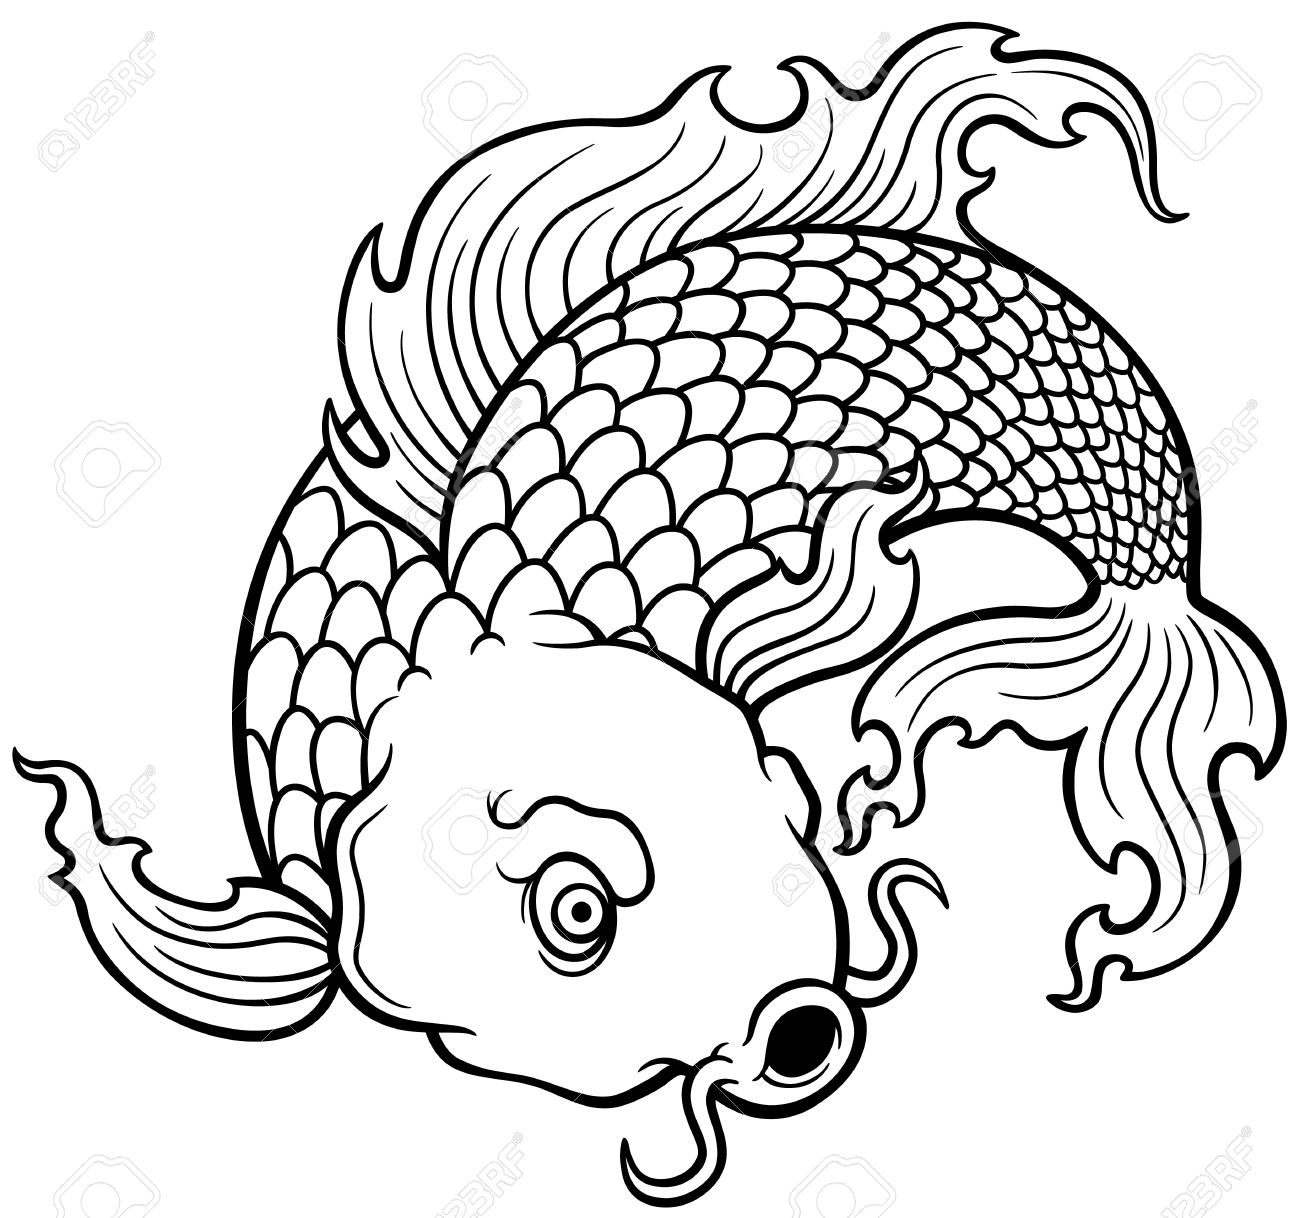 Vector Illustration Of Koi Fish - Coloring Book Royalty Free ...